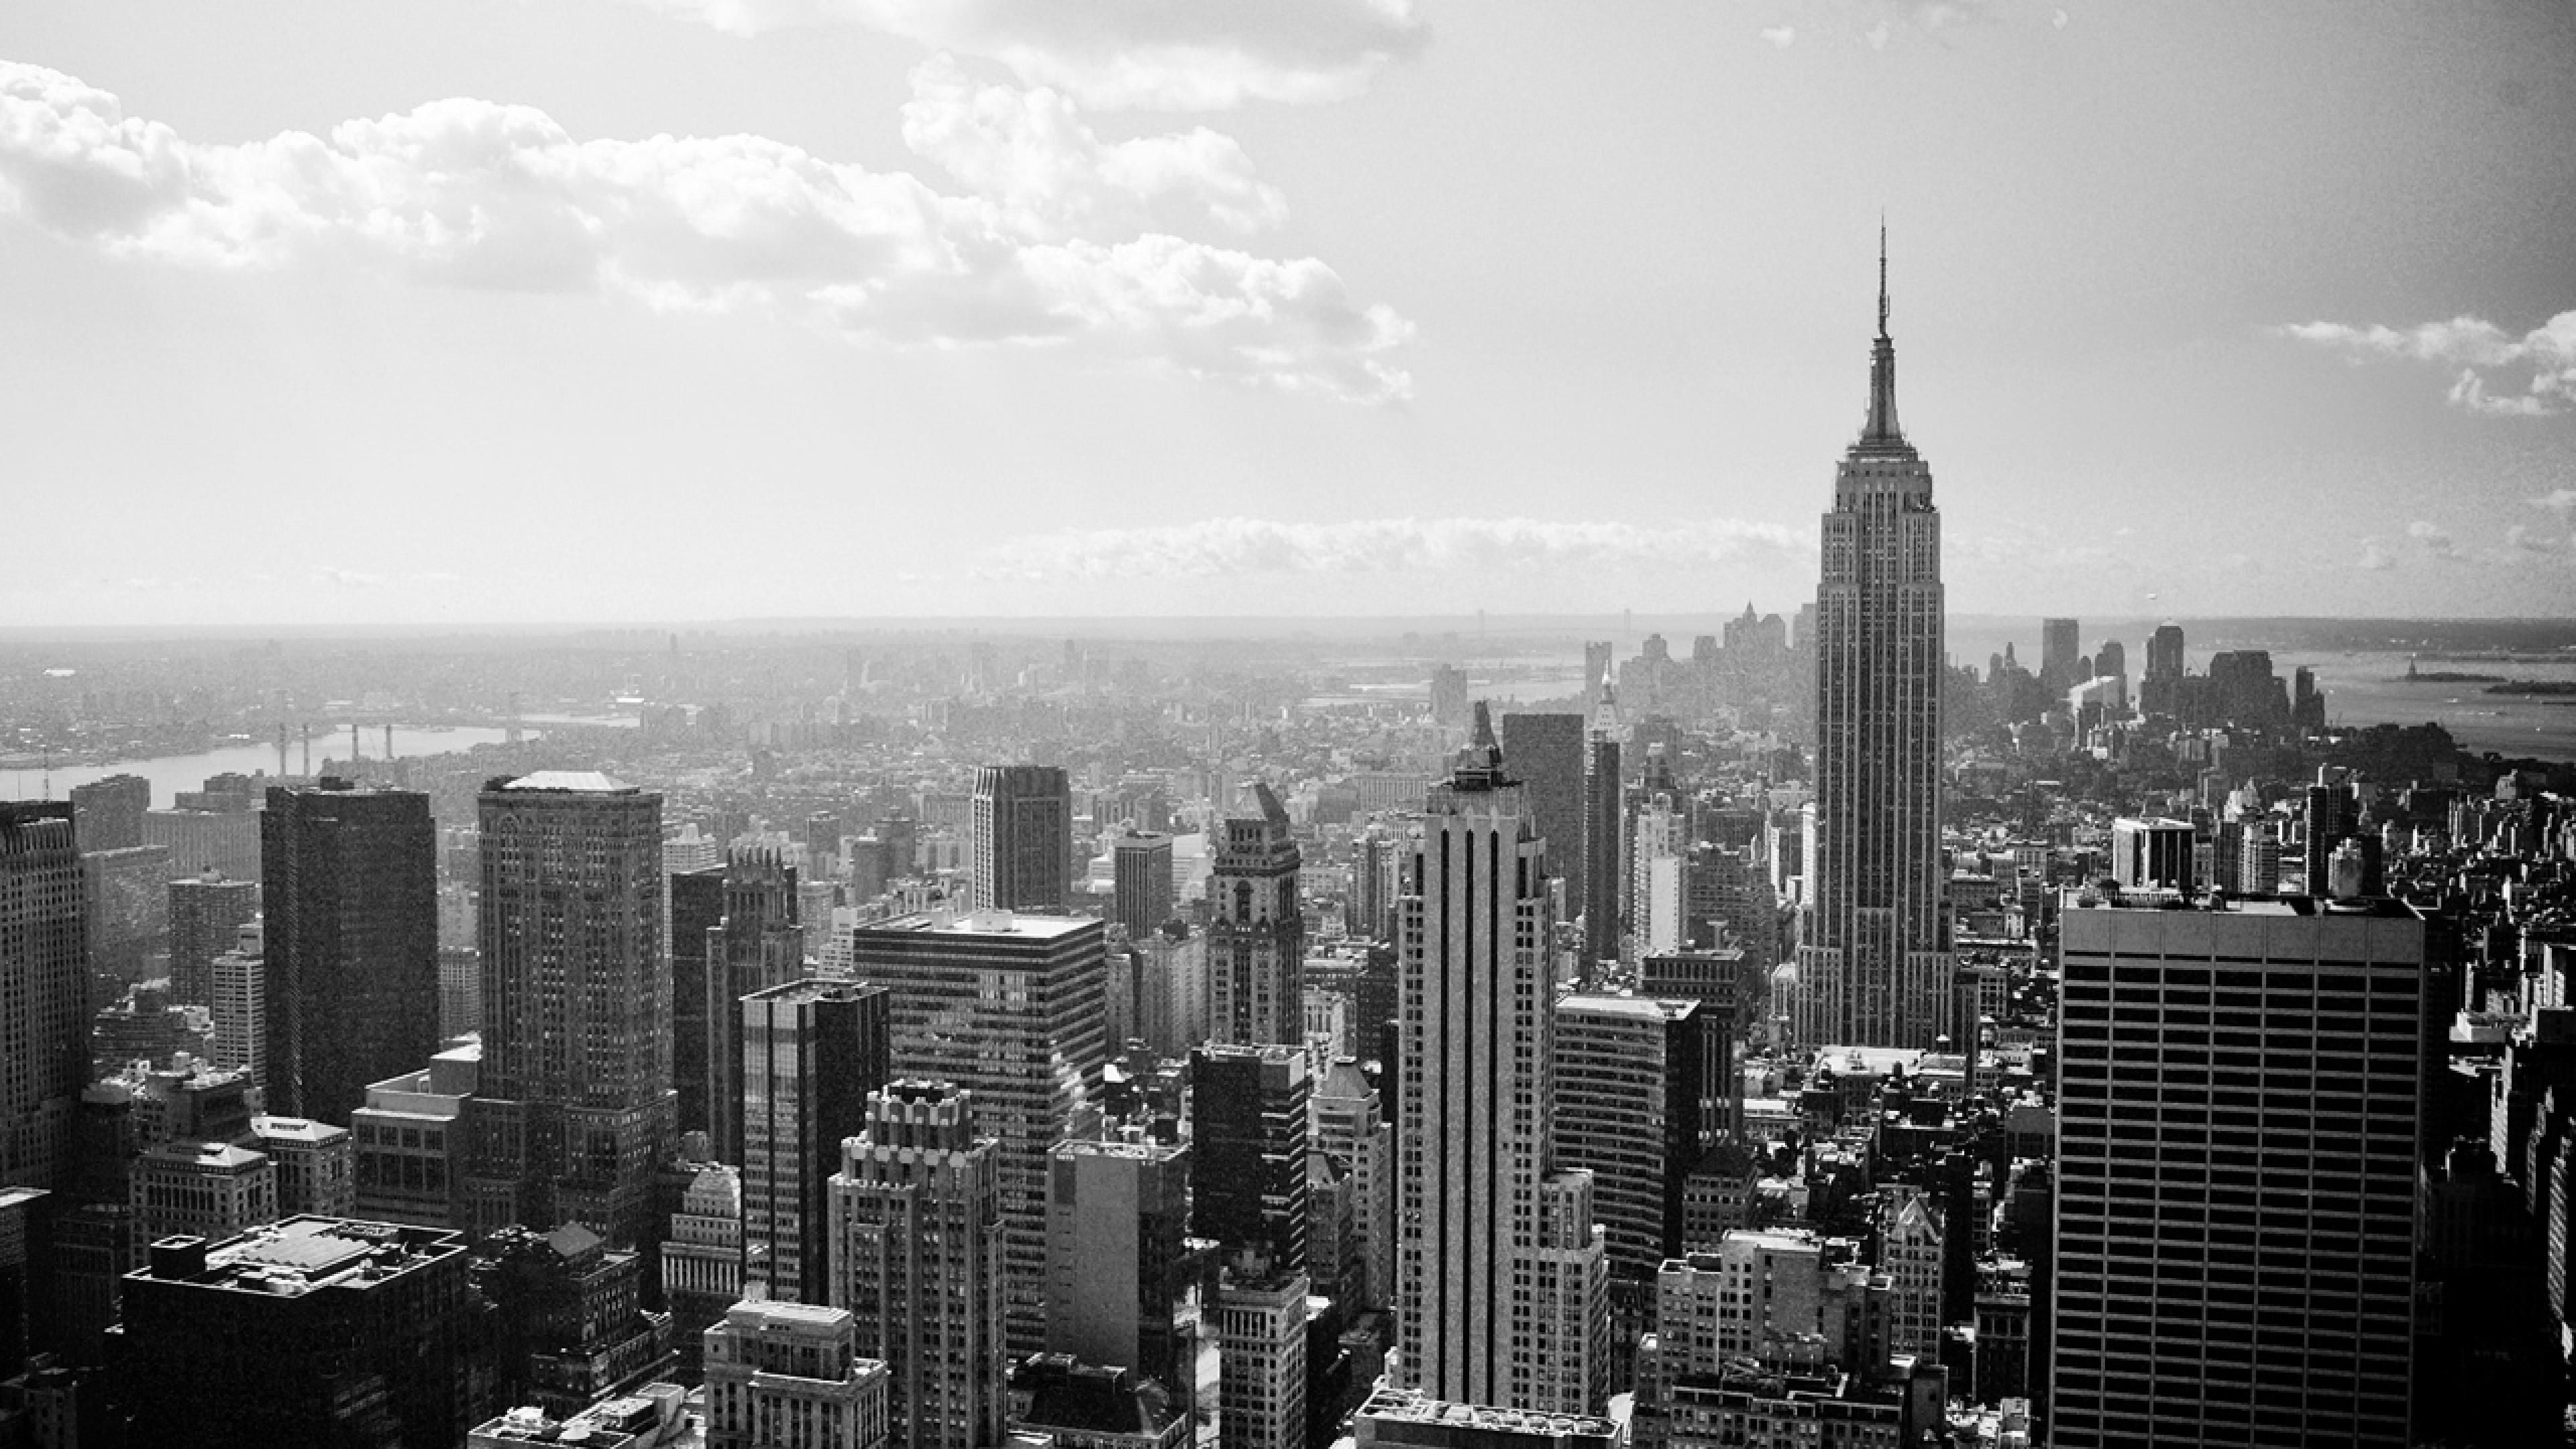 Black And White City Background Google Search Black And White Landscape Landscape Wallpaper New York Wallpaper